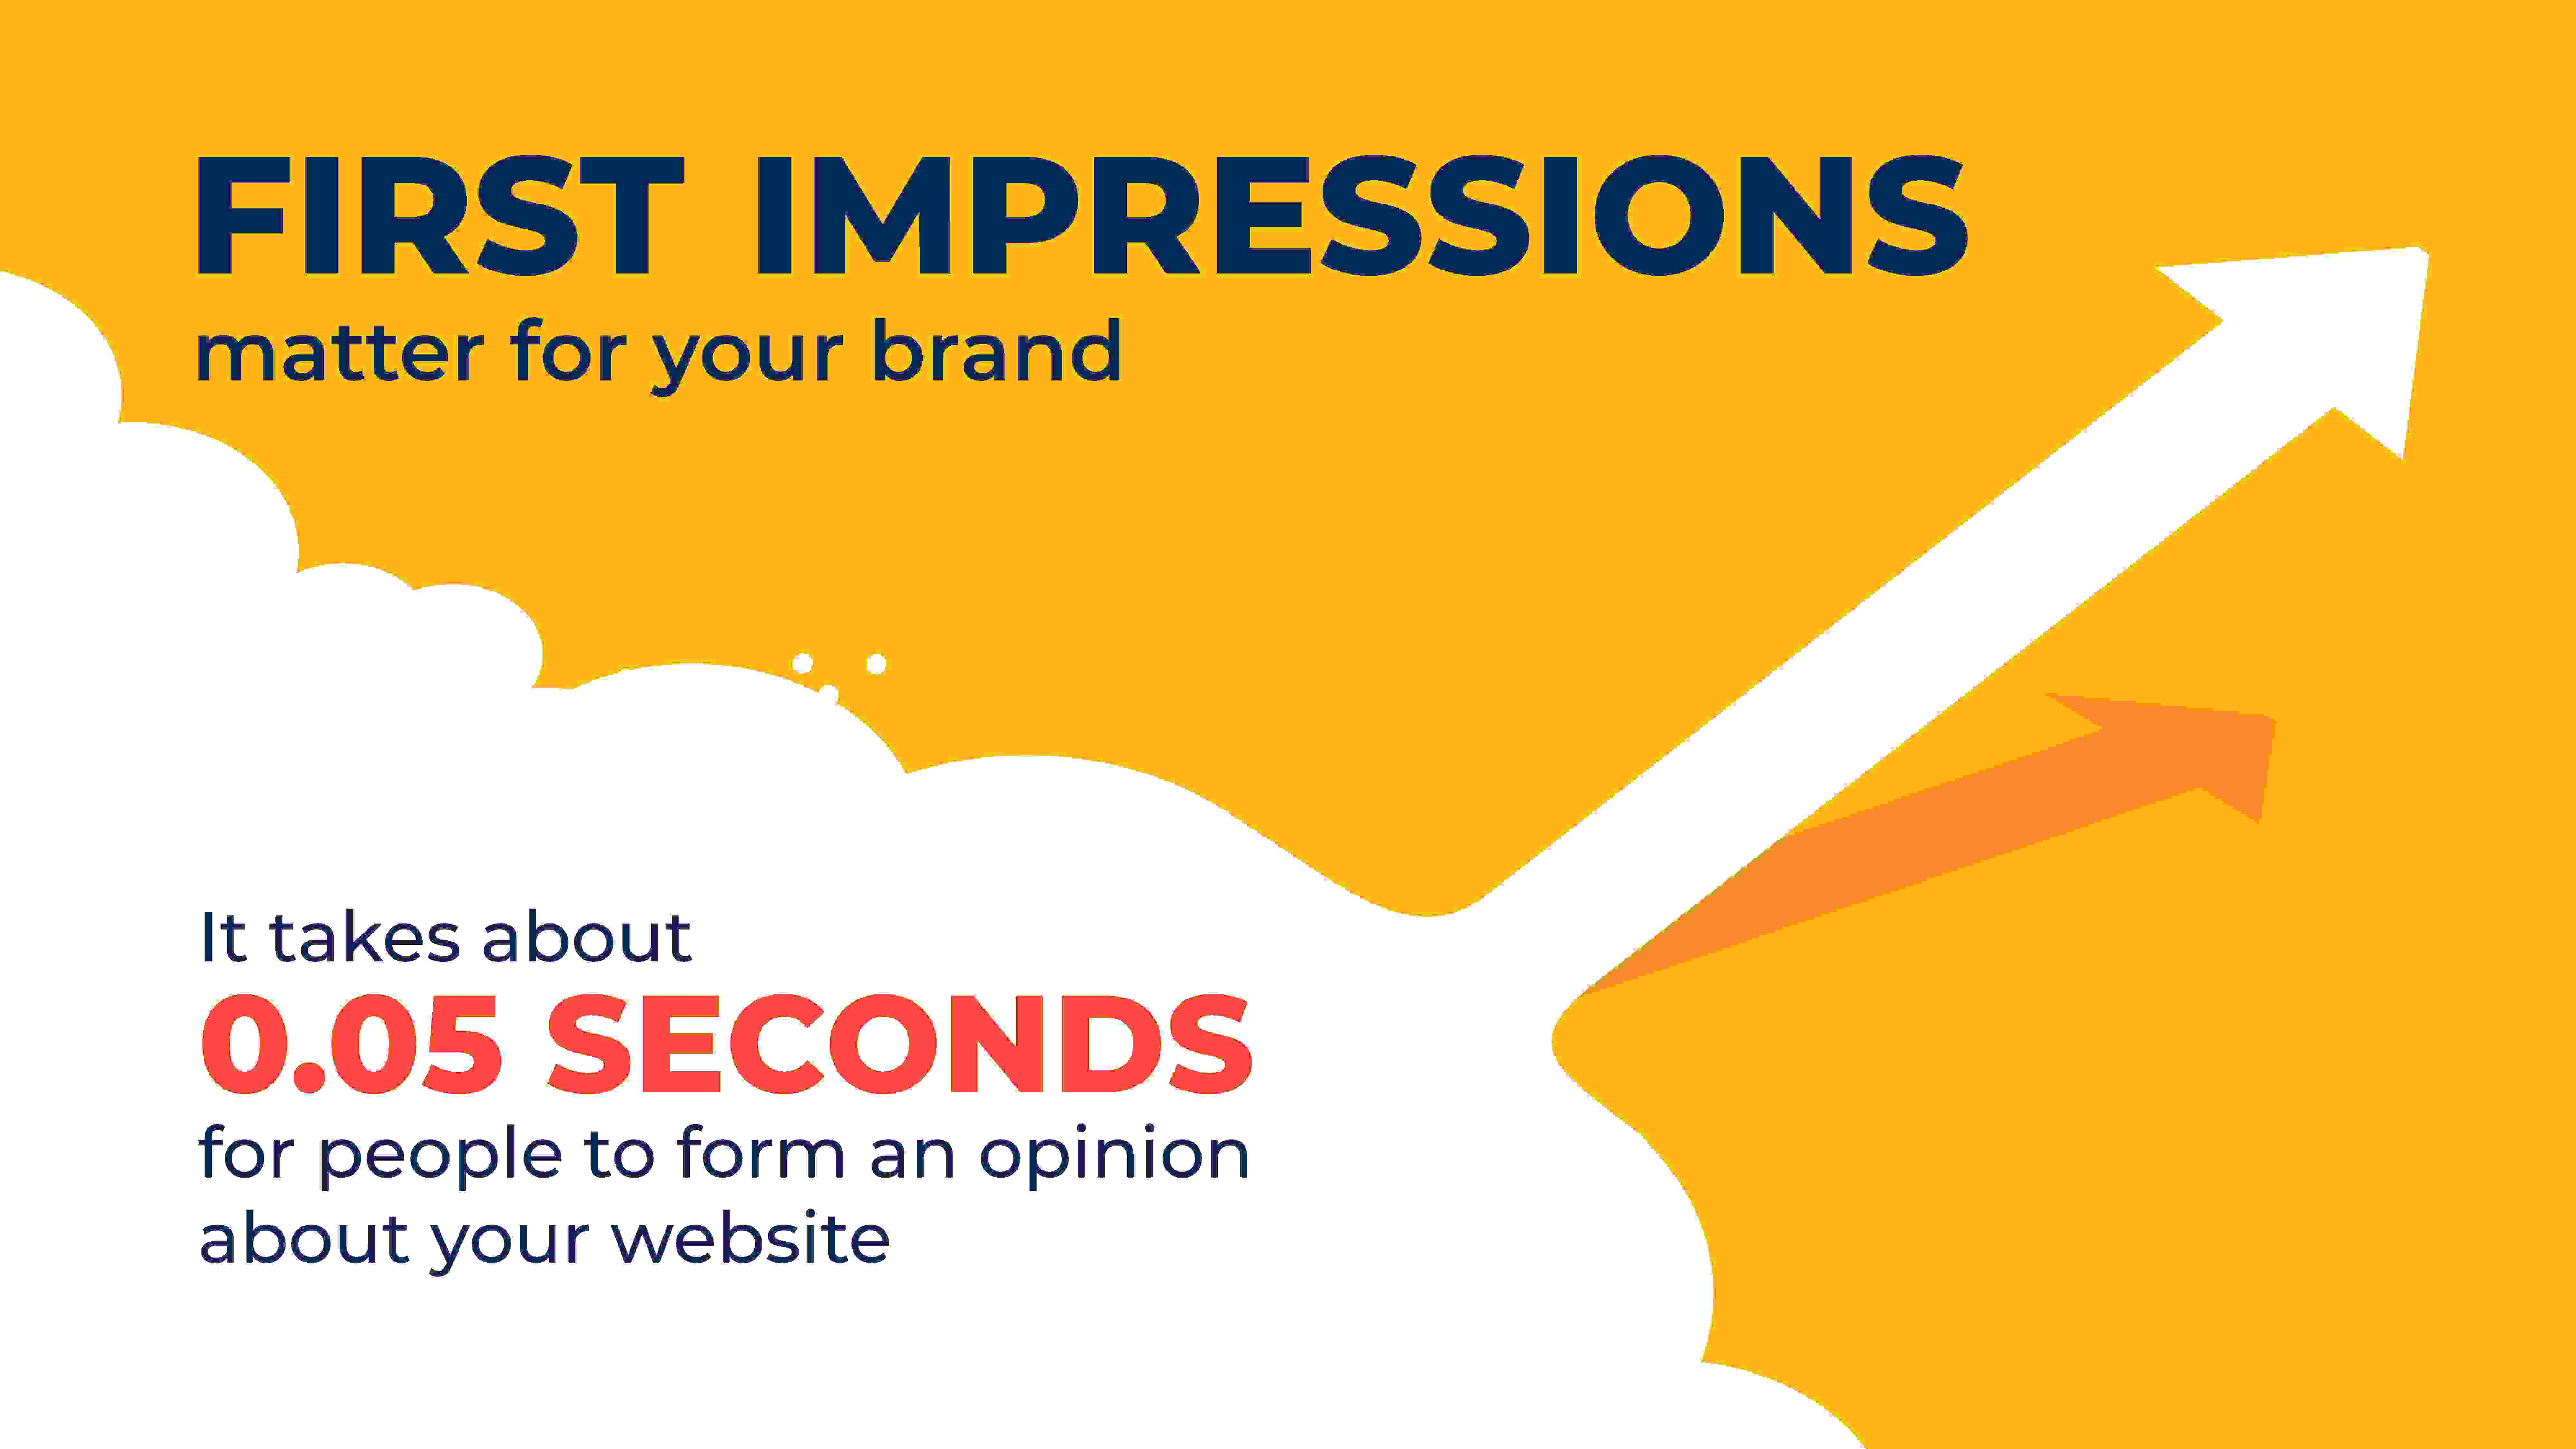 first impression matter for your brand